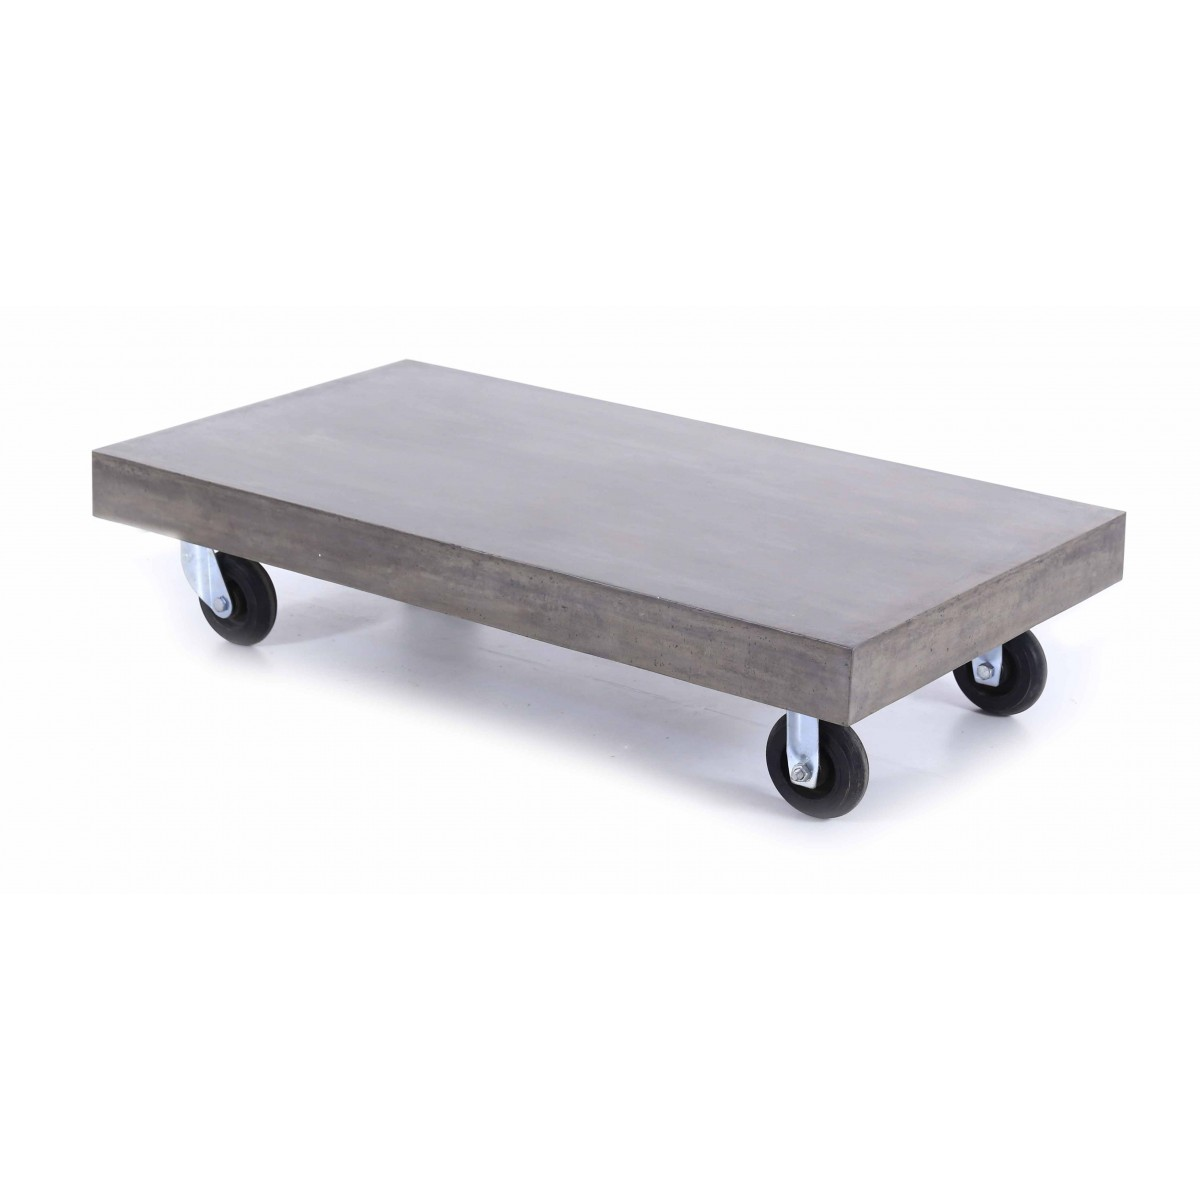 Table basse design b ton roulettes mooviin - Table basse roulettes ...